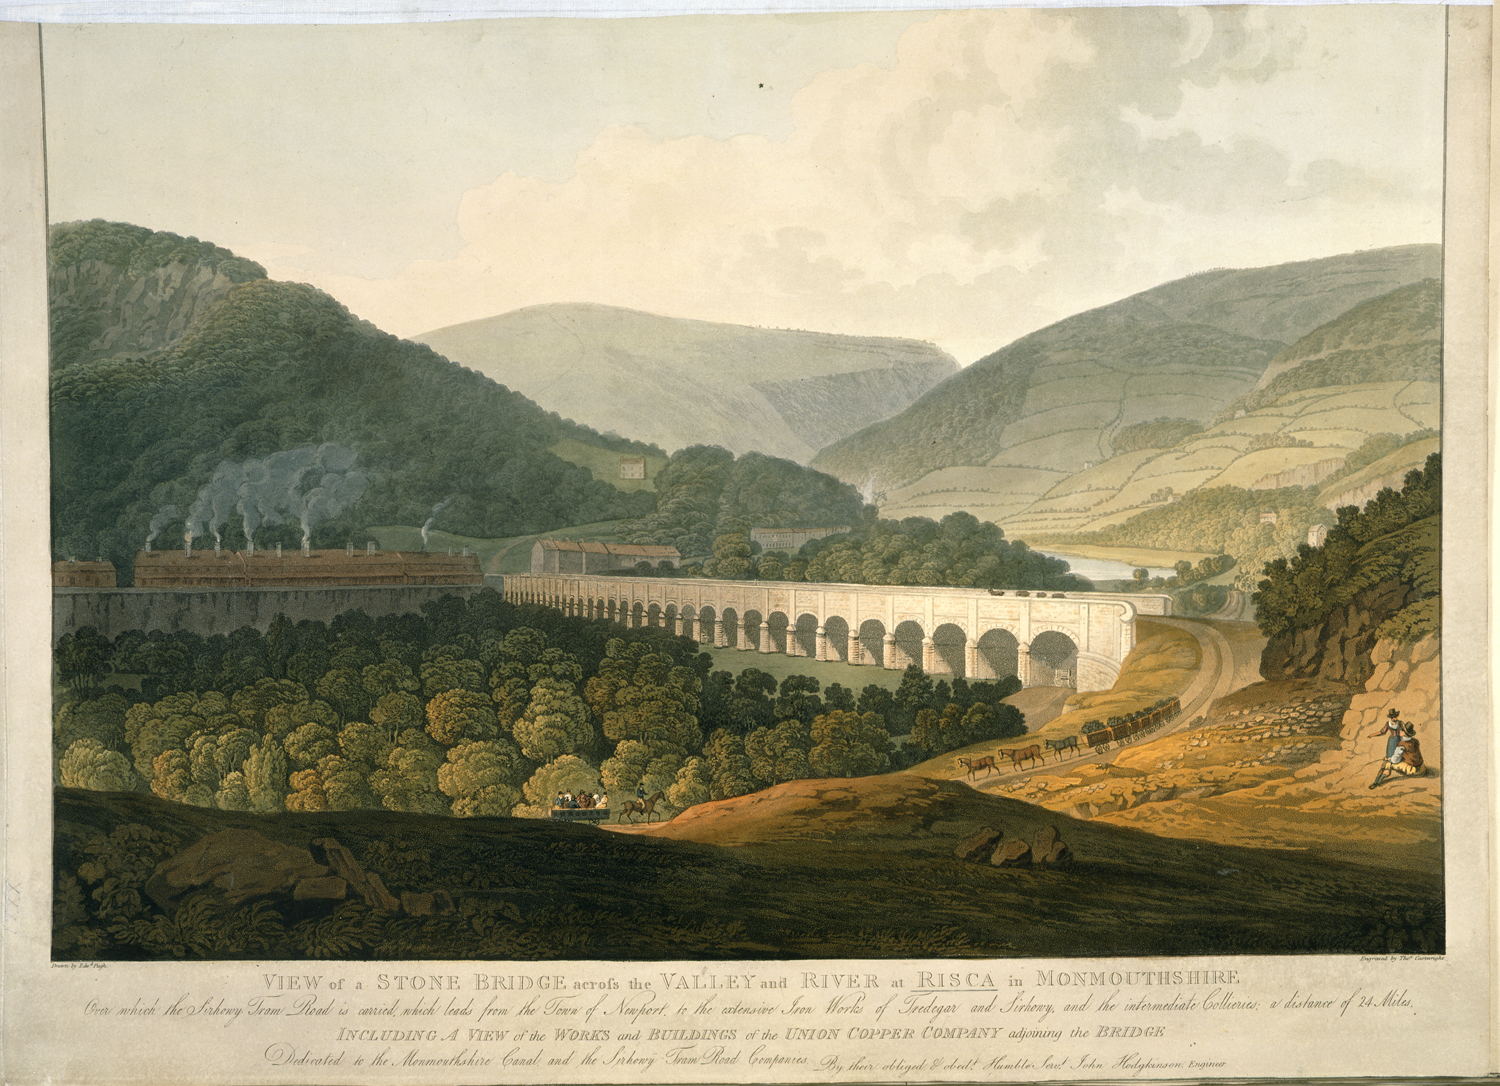 View of a Stone Bridge across the Valley and River at Risca in Monmouthshire after Edward Pugh